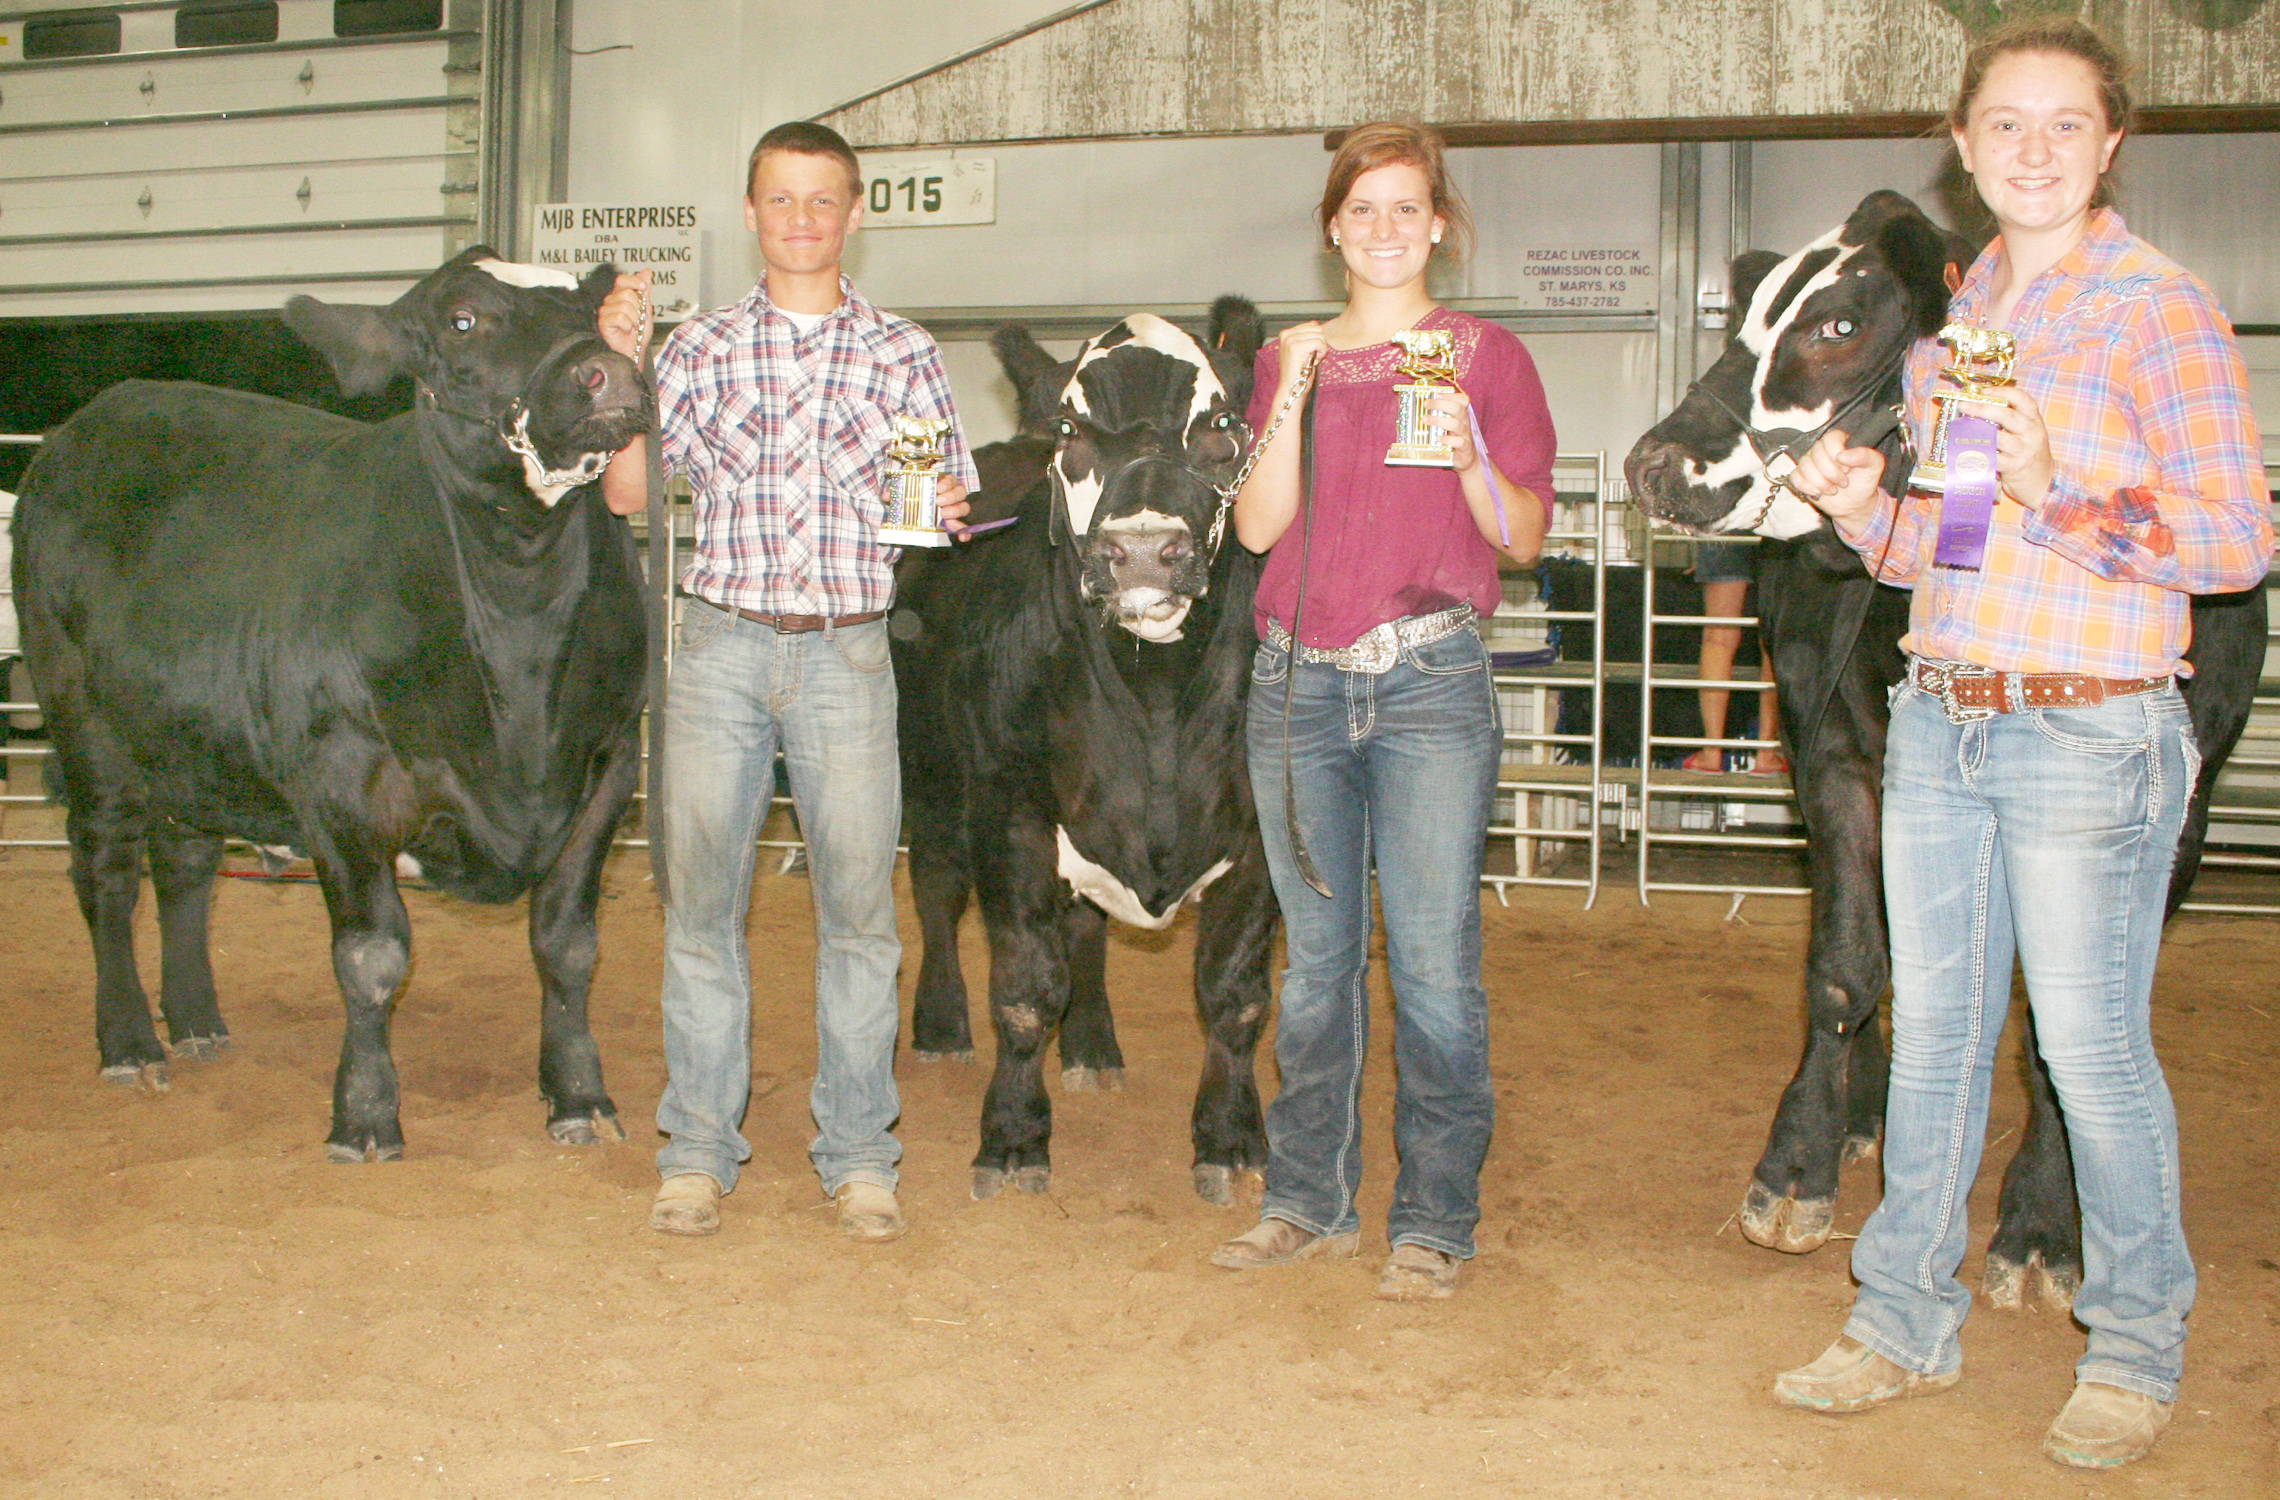 The top beef pen of three was shown by the North Jackson Jets, represented by (left to right) Colby Rethman, Olivia Yingst and Jenna McAllister. (Photo by Brian Sanders)